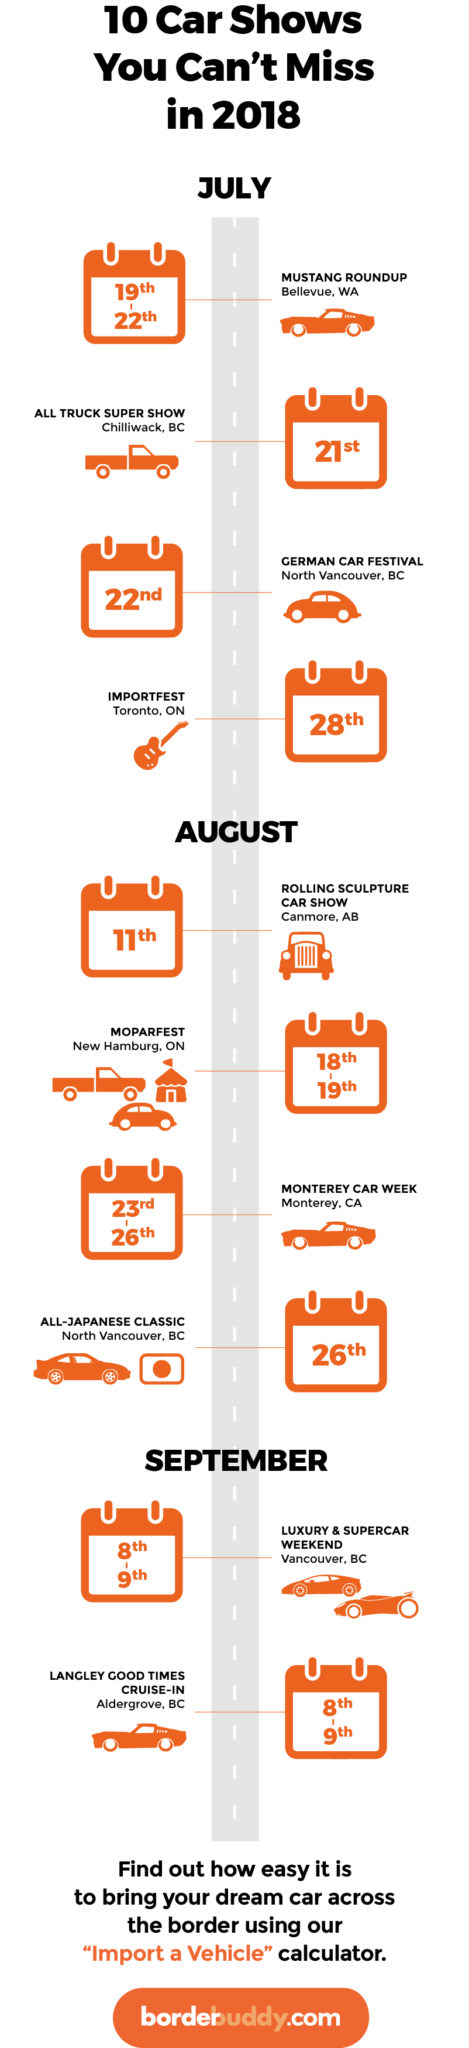 Infographic - 10 Can't Miss North American Car Show in 2018 - BorderBuddy